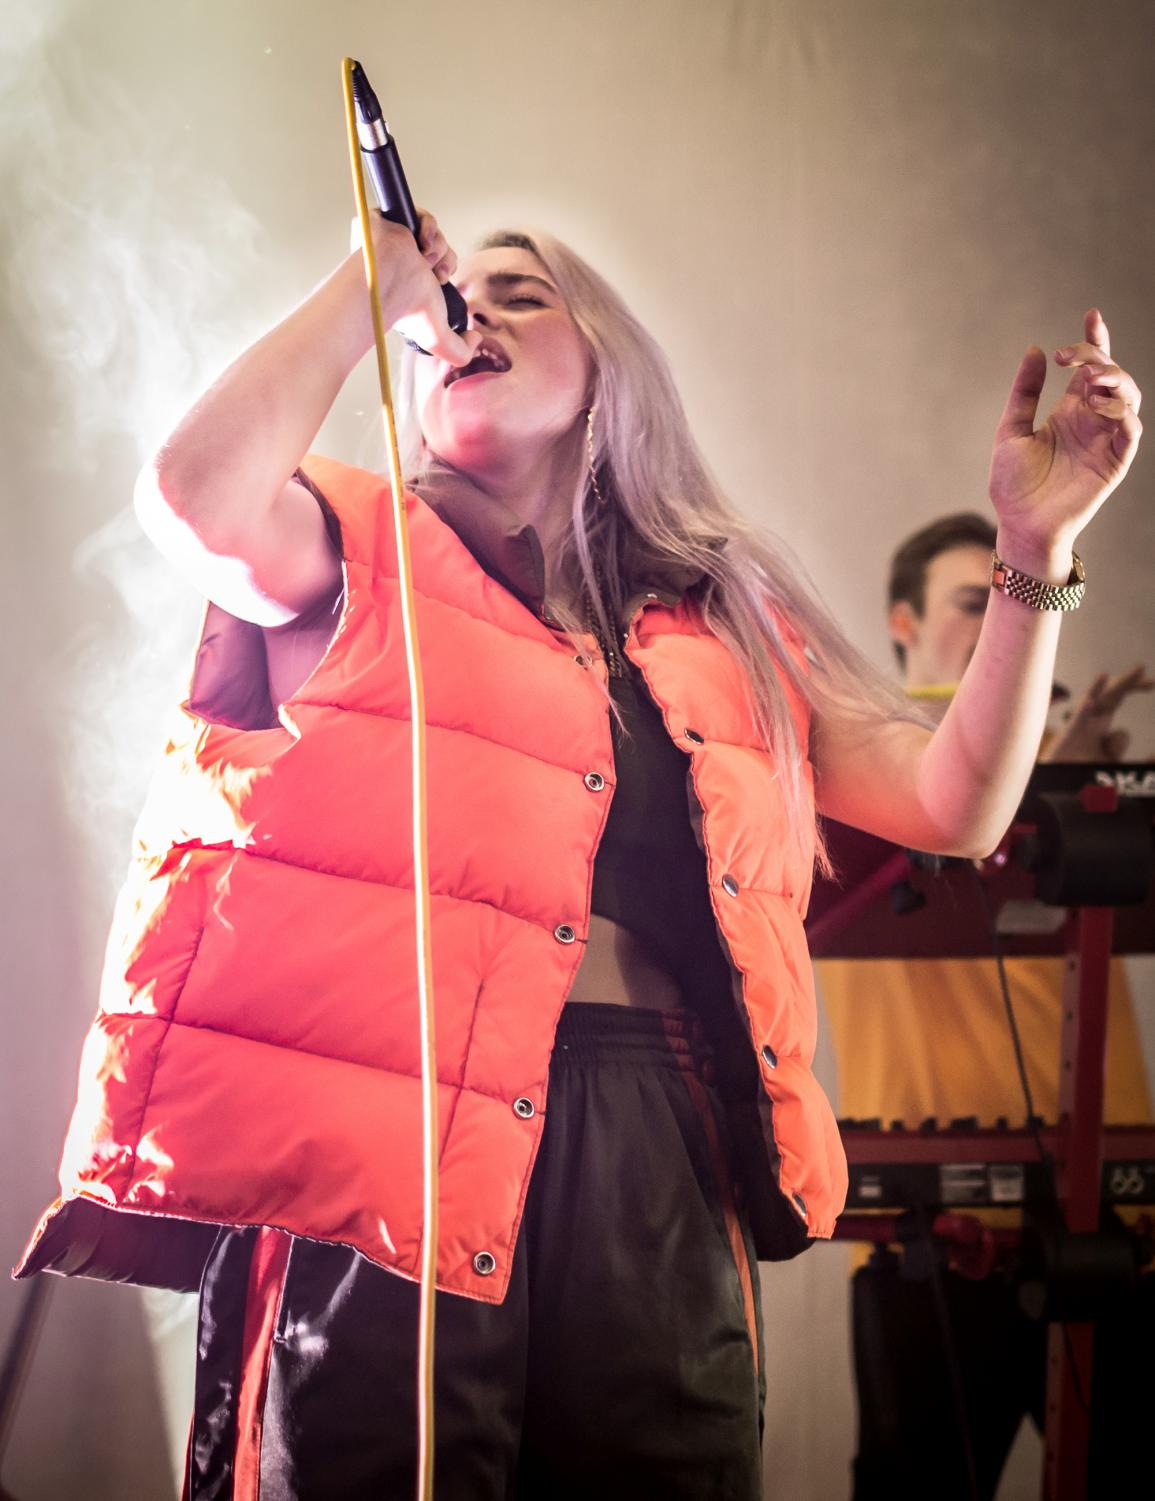 Pictured above is Billie Eilish performing at The Hi Hat in Highland Park, Los Angeles, California in August 2017.